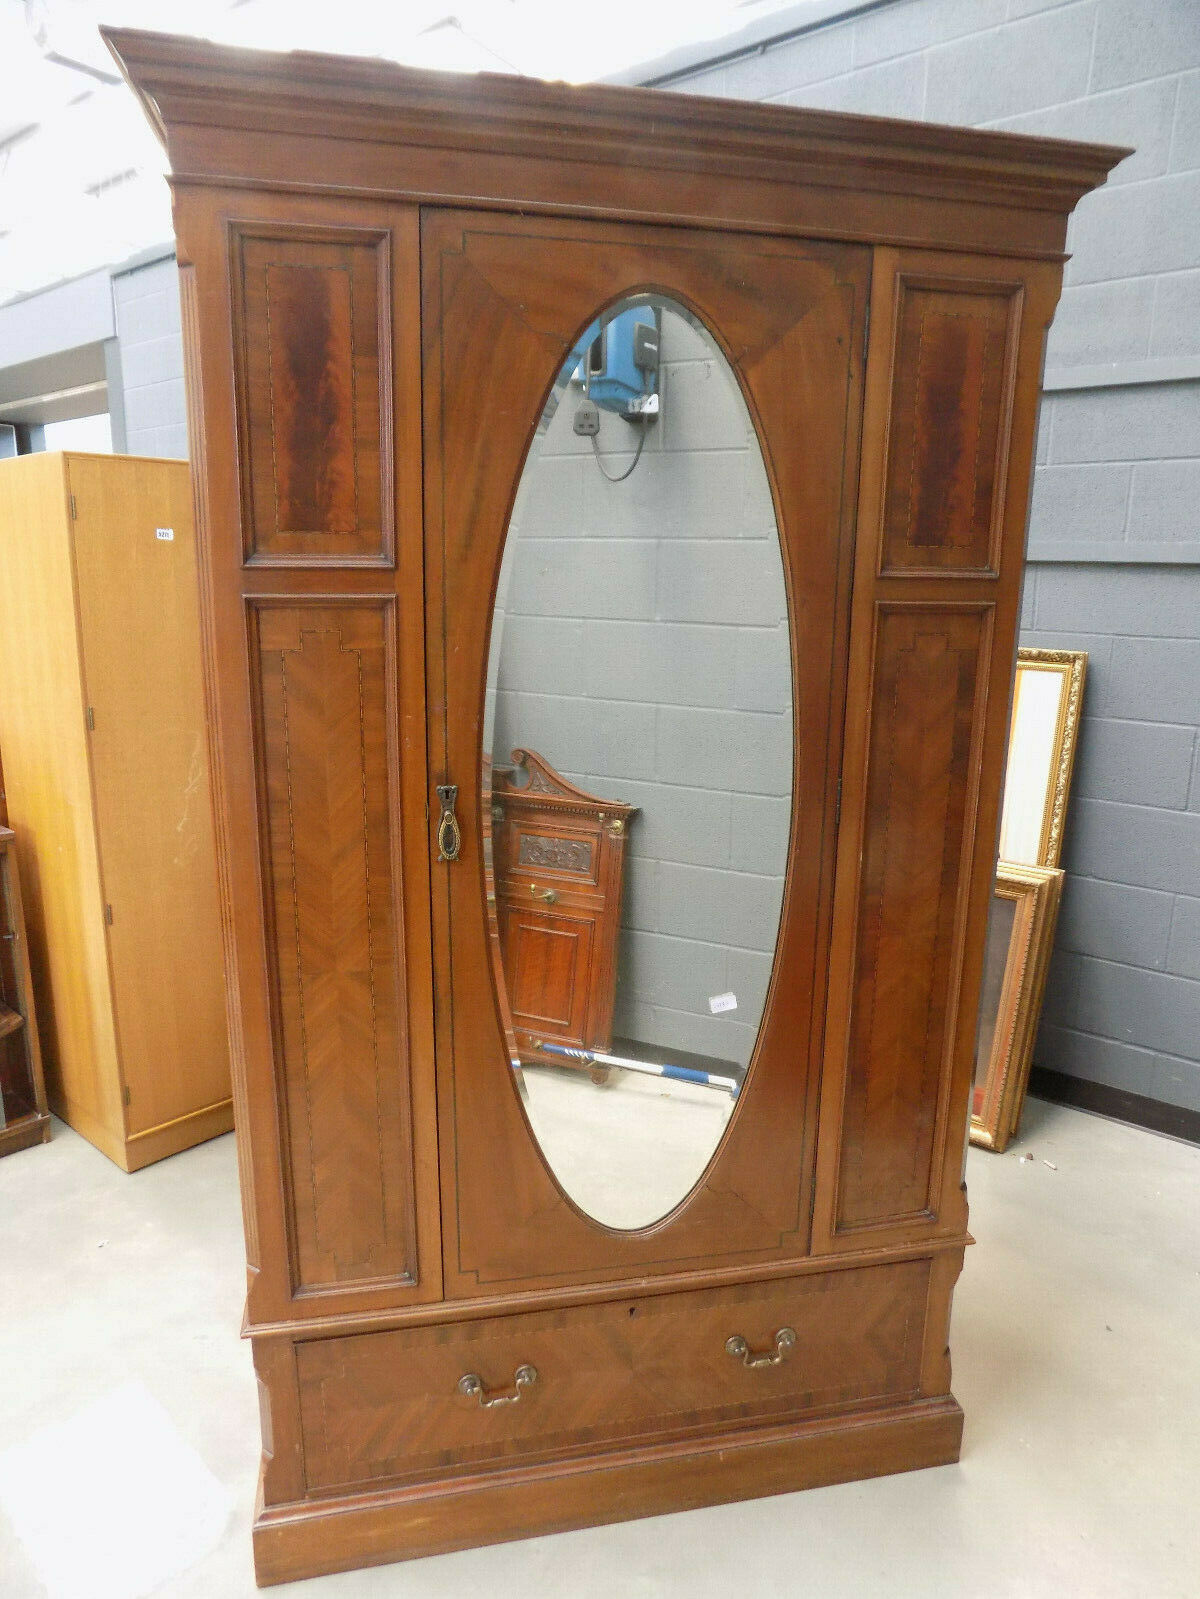 Best Edwardian Antique Mahogany Double Wardrobe Mirrored Door Hanging Rails Drawers Vinterior Co 640 x 480